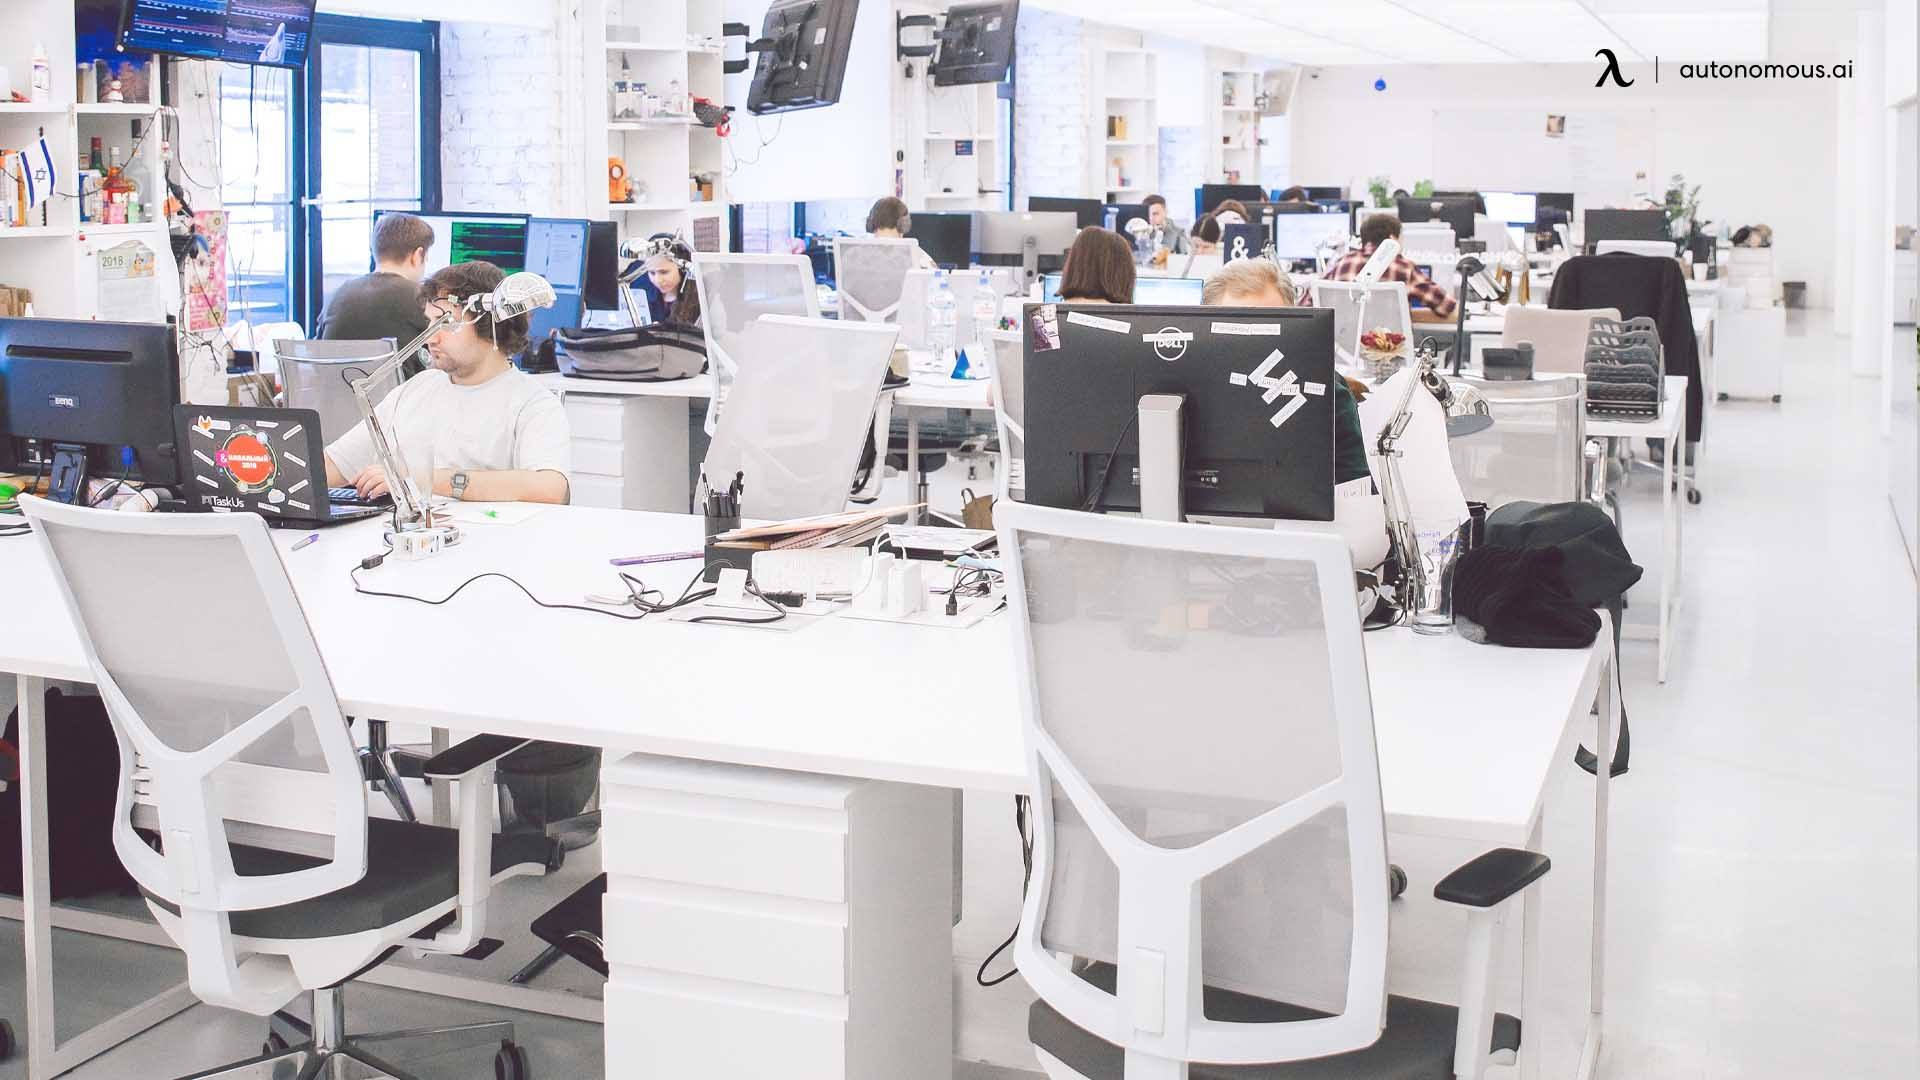 ergonomic offices make people cared